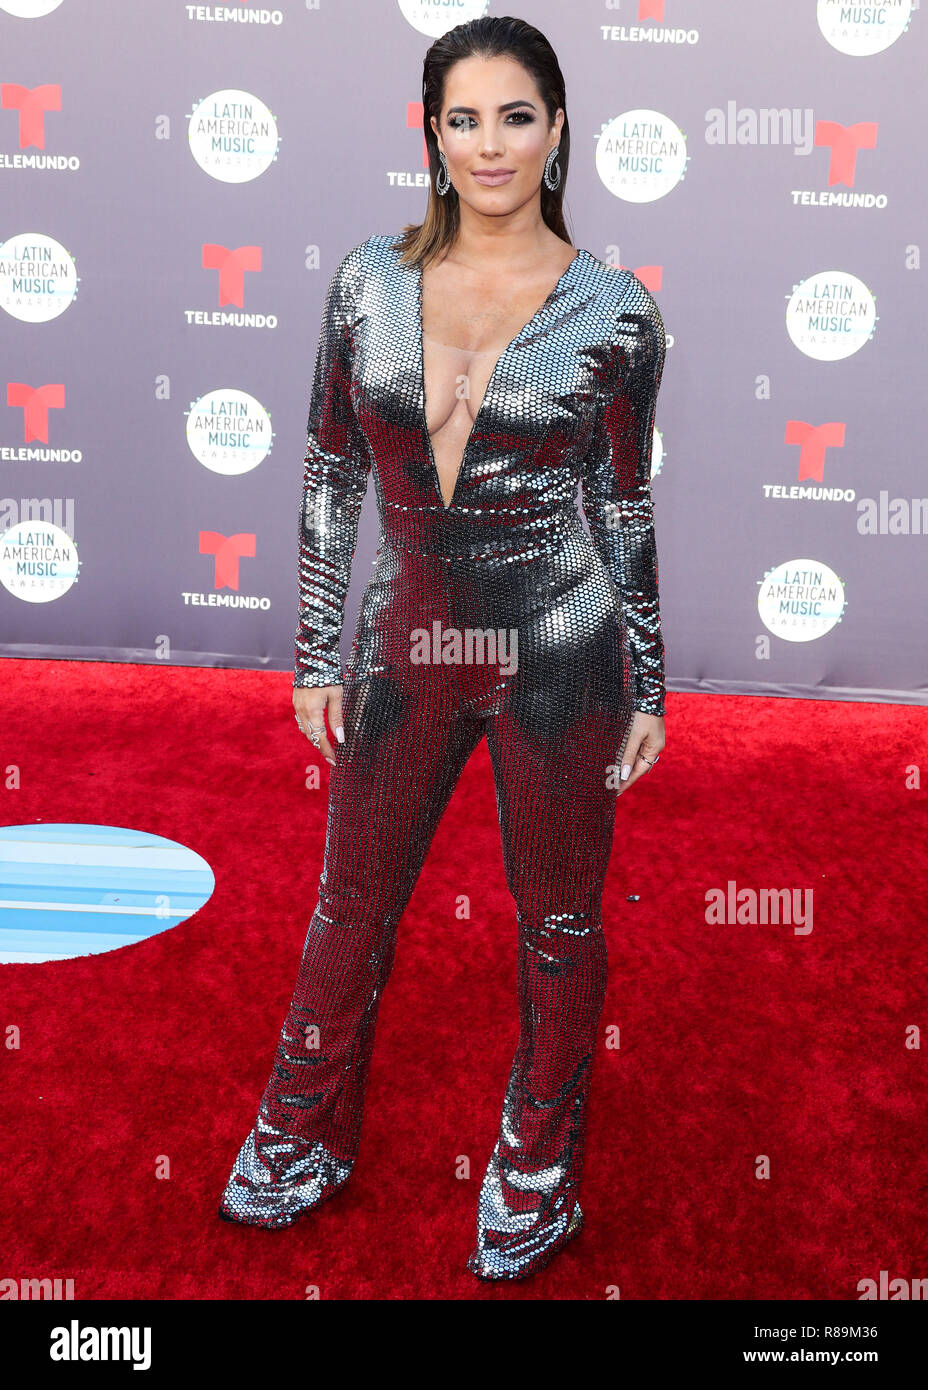 In or Out - Page 59 Hollywood-los-angeles-ca-usa-october-25-gaby-espino-at-the-2018-latin-american-music-awards-held-at-the-dolby-theatre-on-october-25-2018-in-hollywood-los-angeles-california-united-states-photo-by-xavier-collinimage-press-agency-R89M36